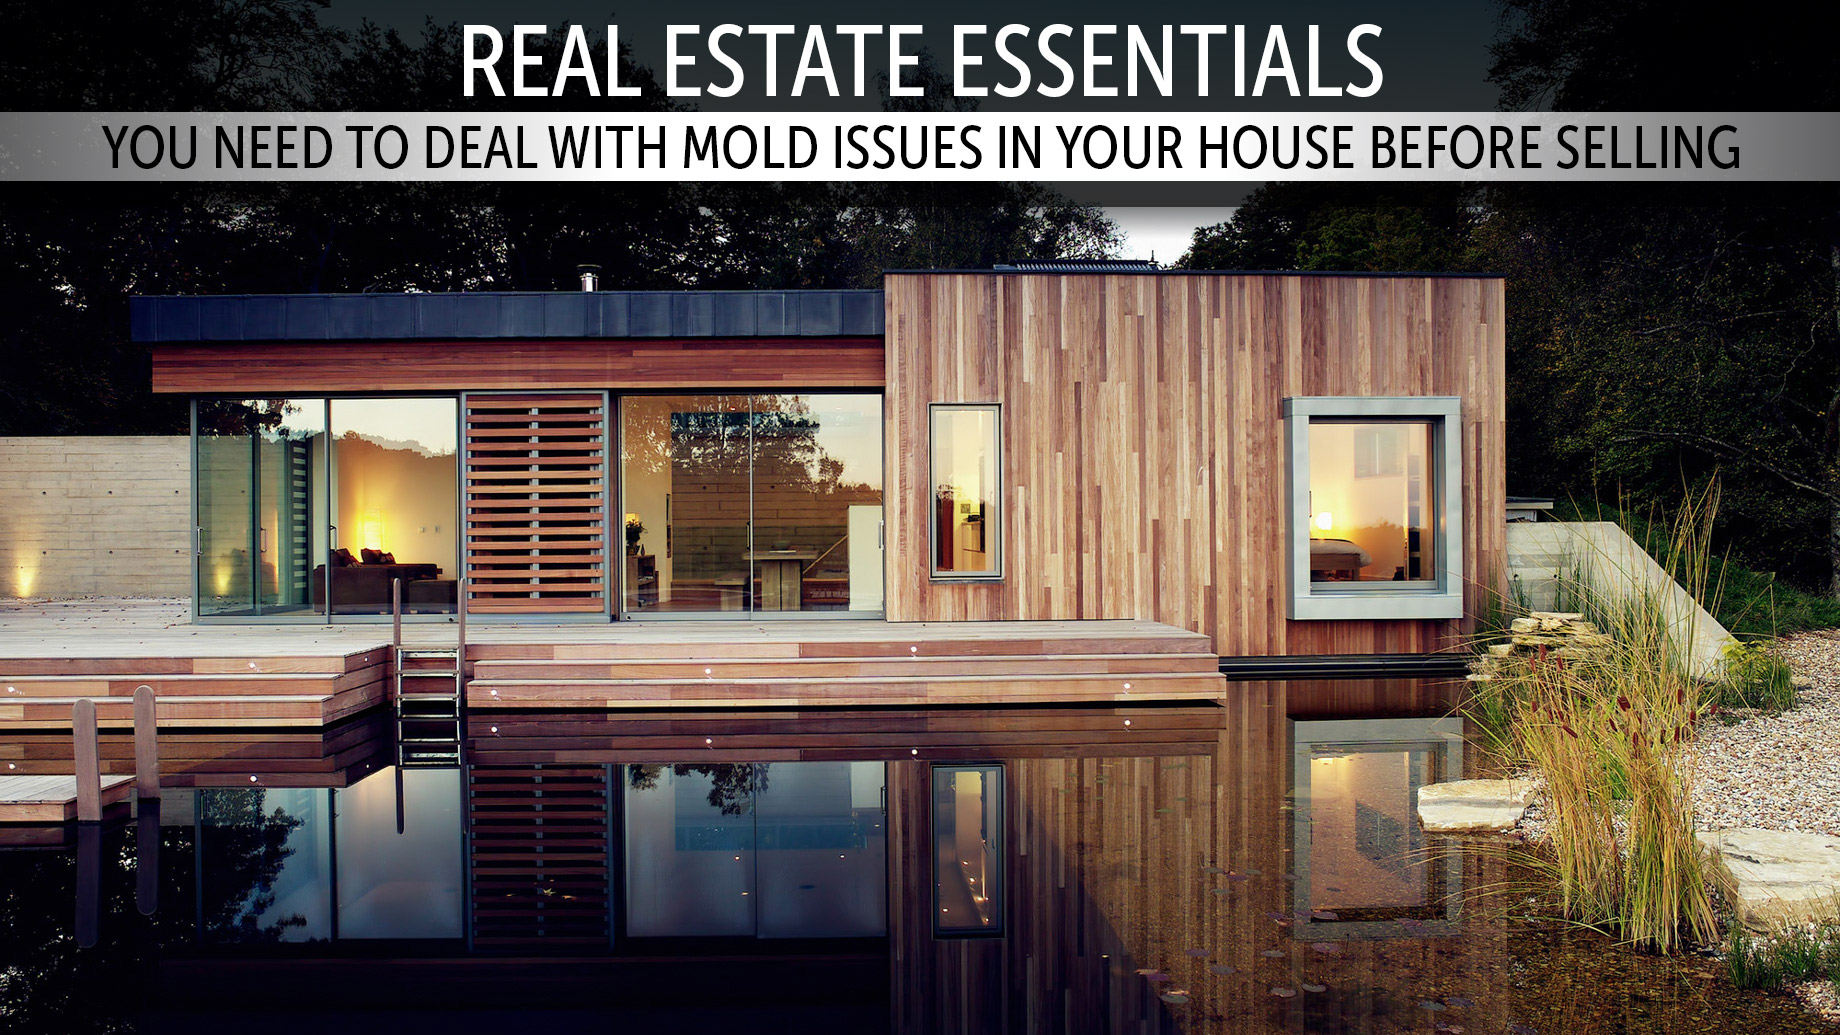 Real Estate Essentials - You Need to Deal with Mold Issues in Your House Before Selling